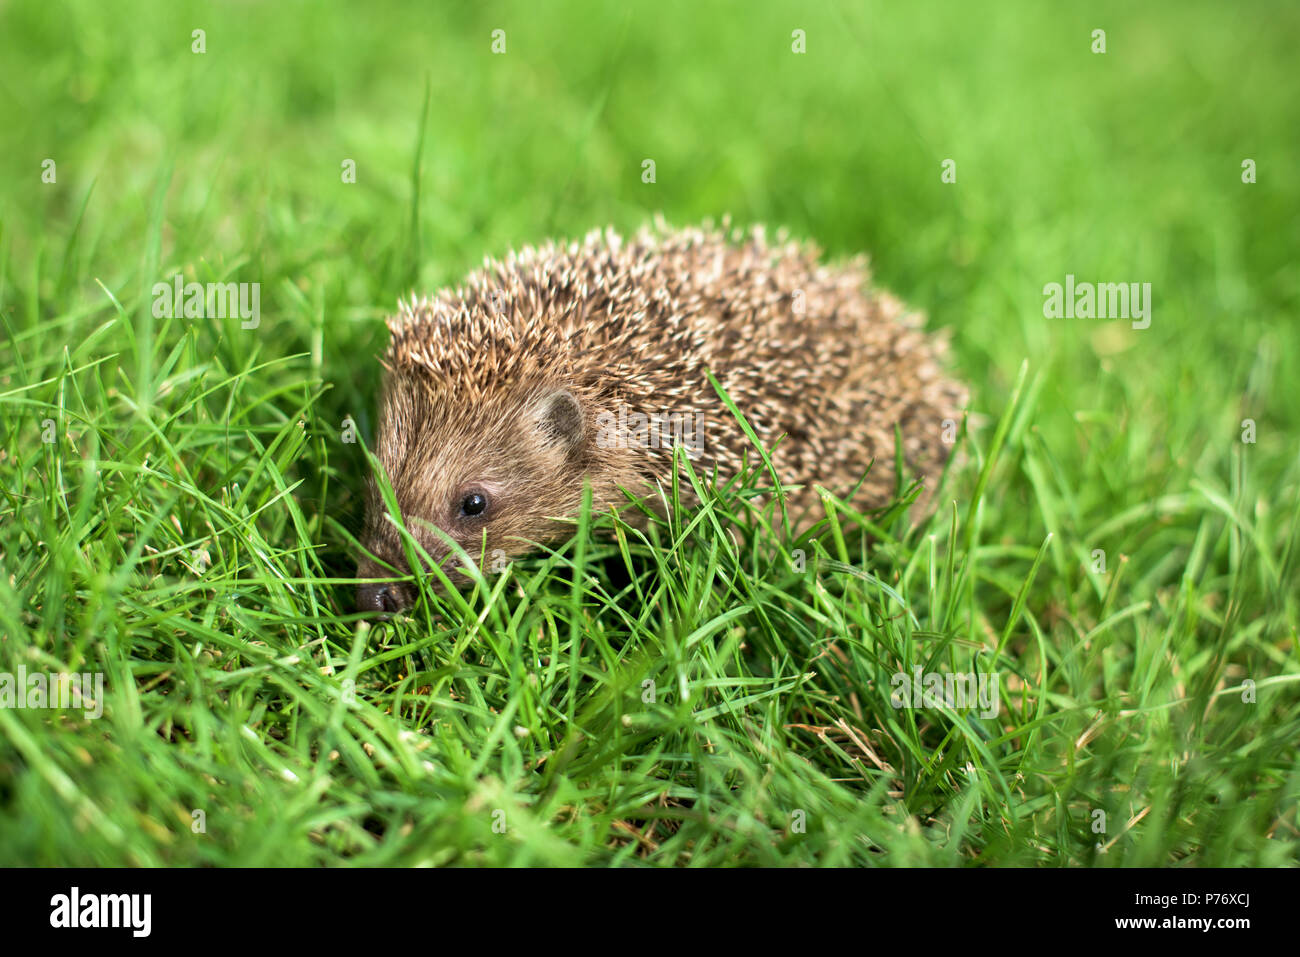 Small hedgehog in a green grass - profile close up - Stock Image